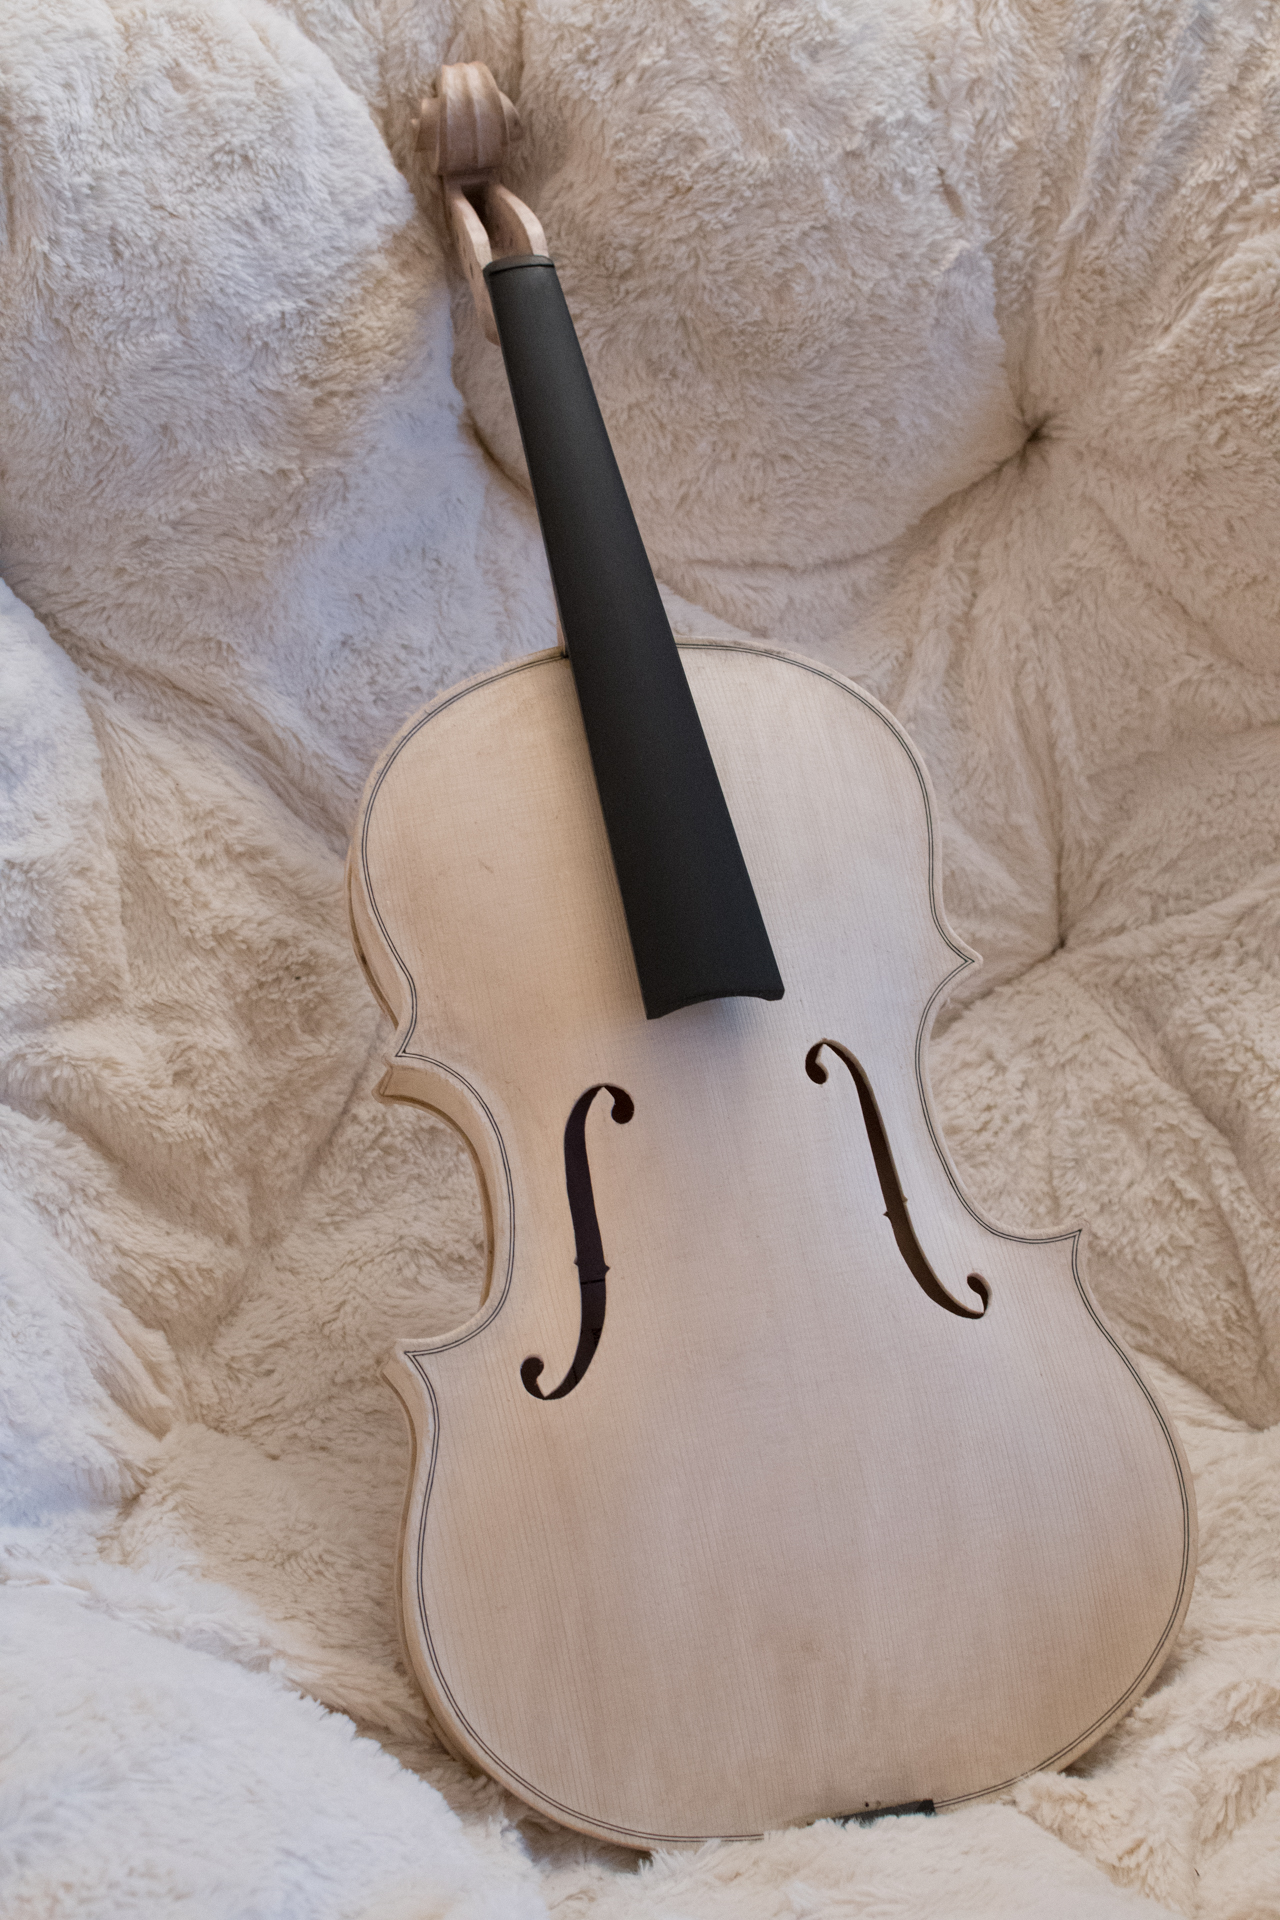 The viola I made for Gillian just before applying the varnish.